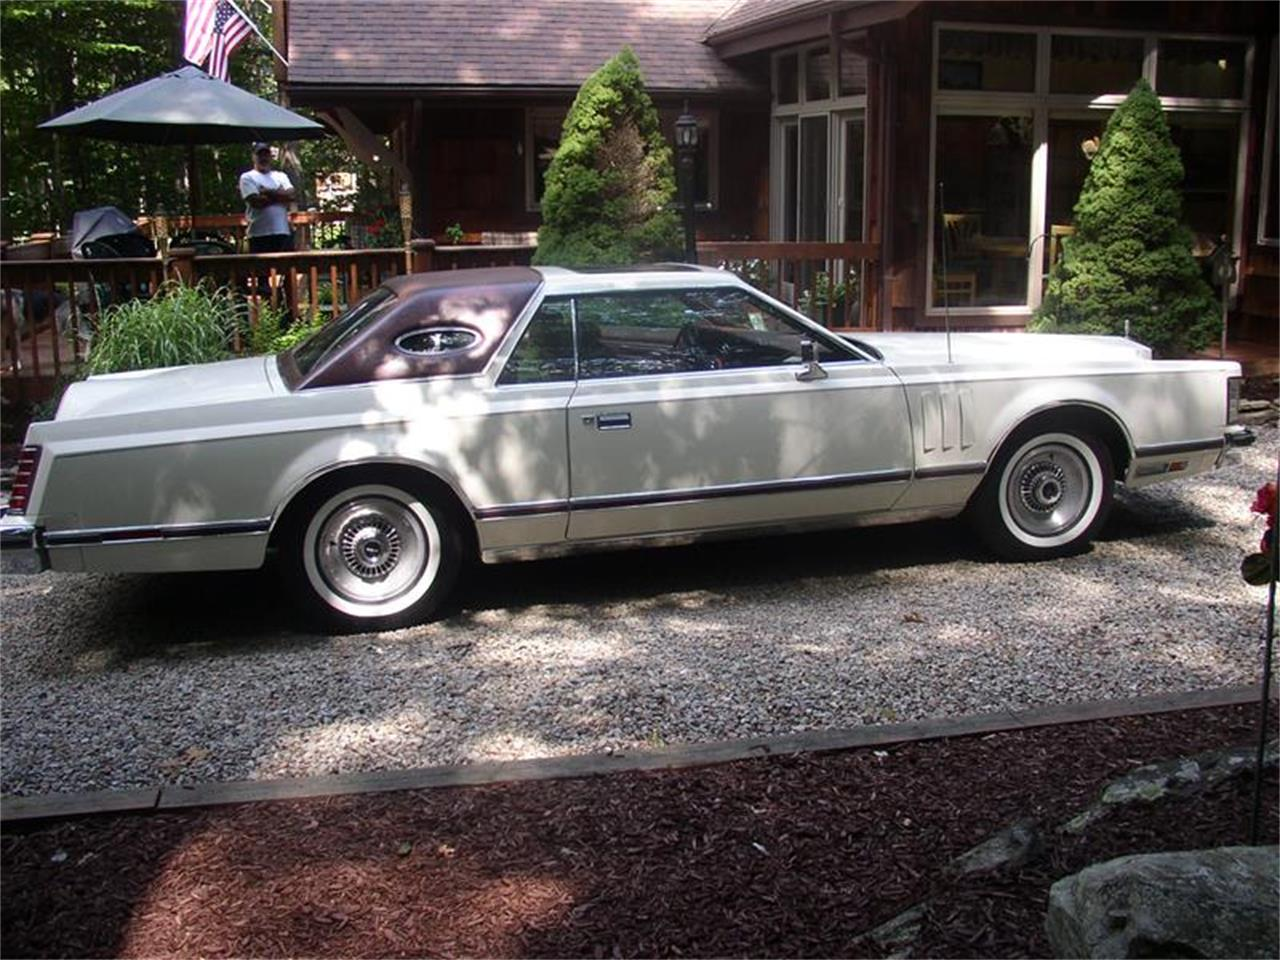 Large Picture of '79 Lincoln Mark V located in San Luis Obispo California - $18,000.00 - EAC3